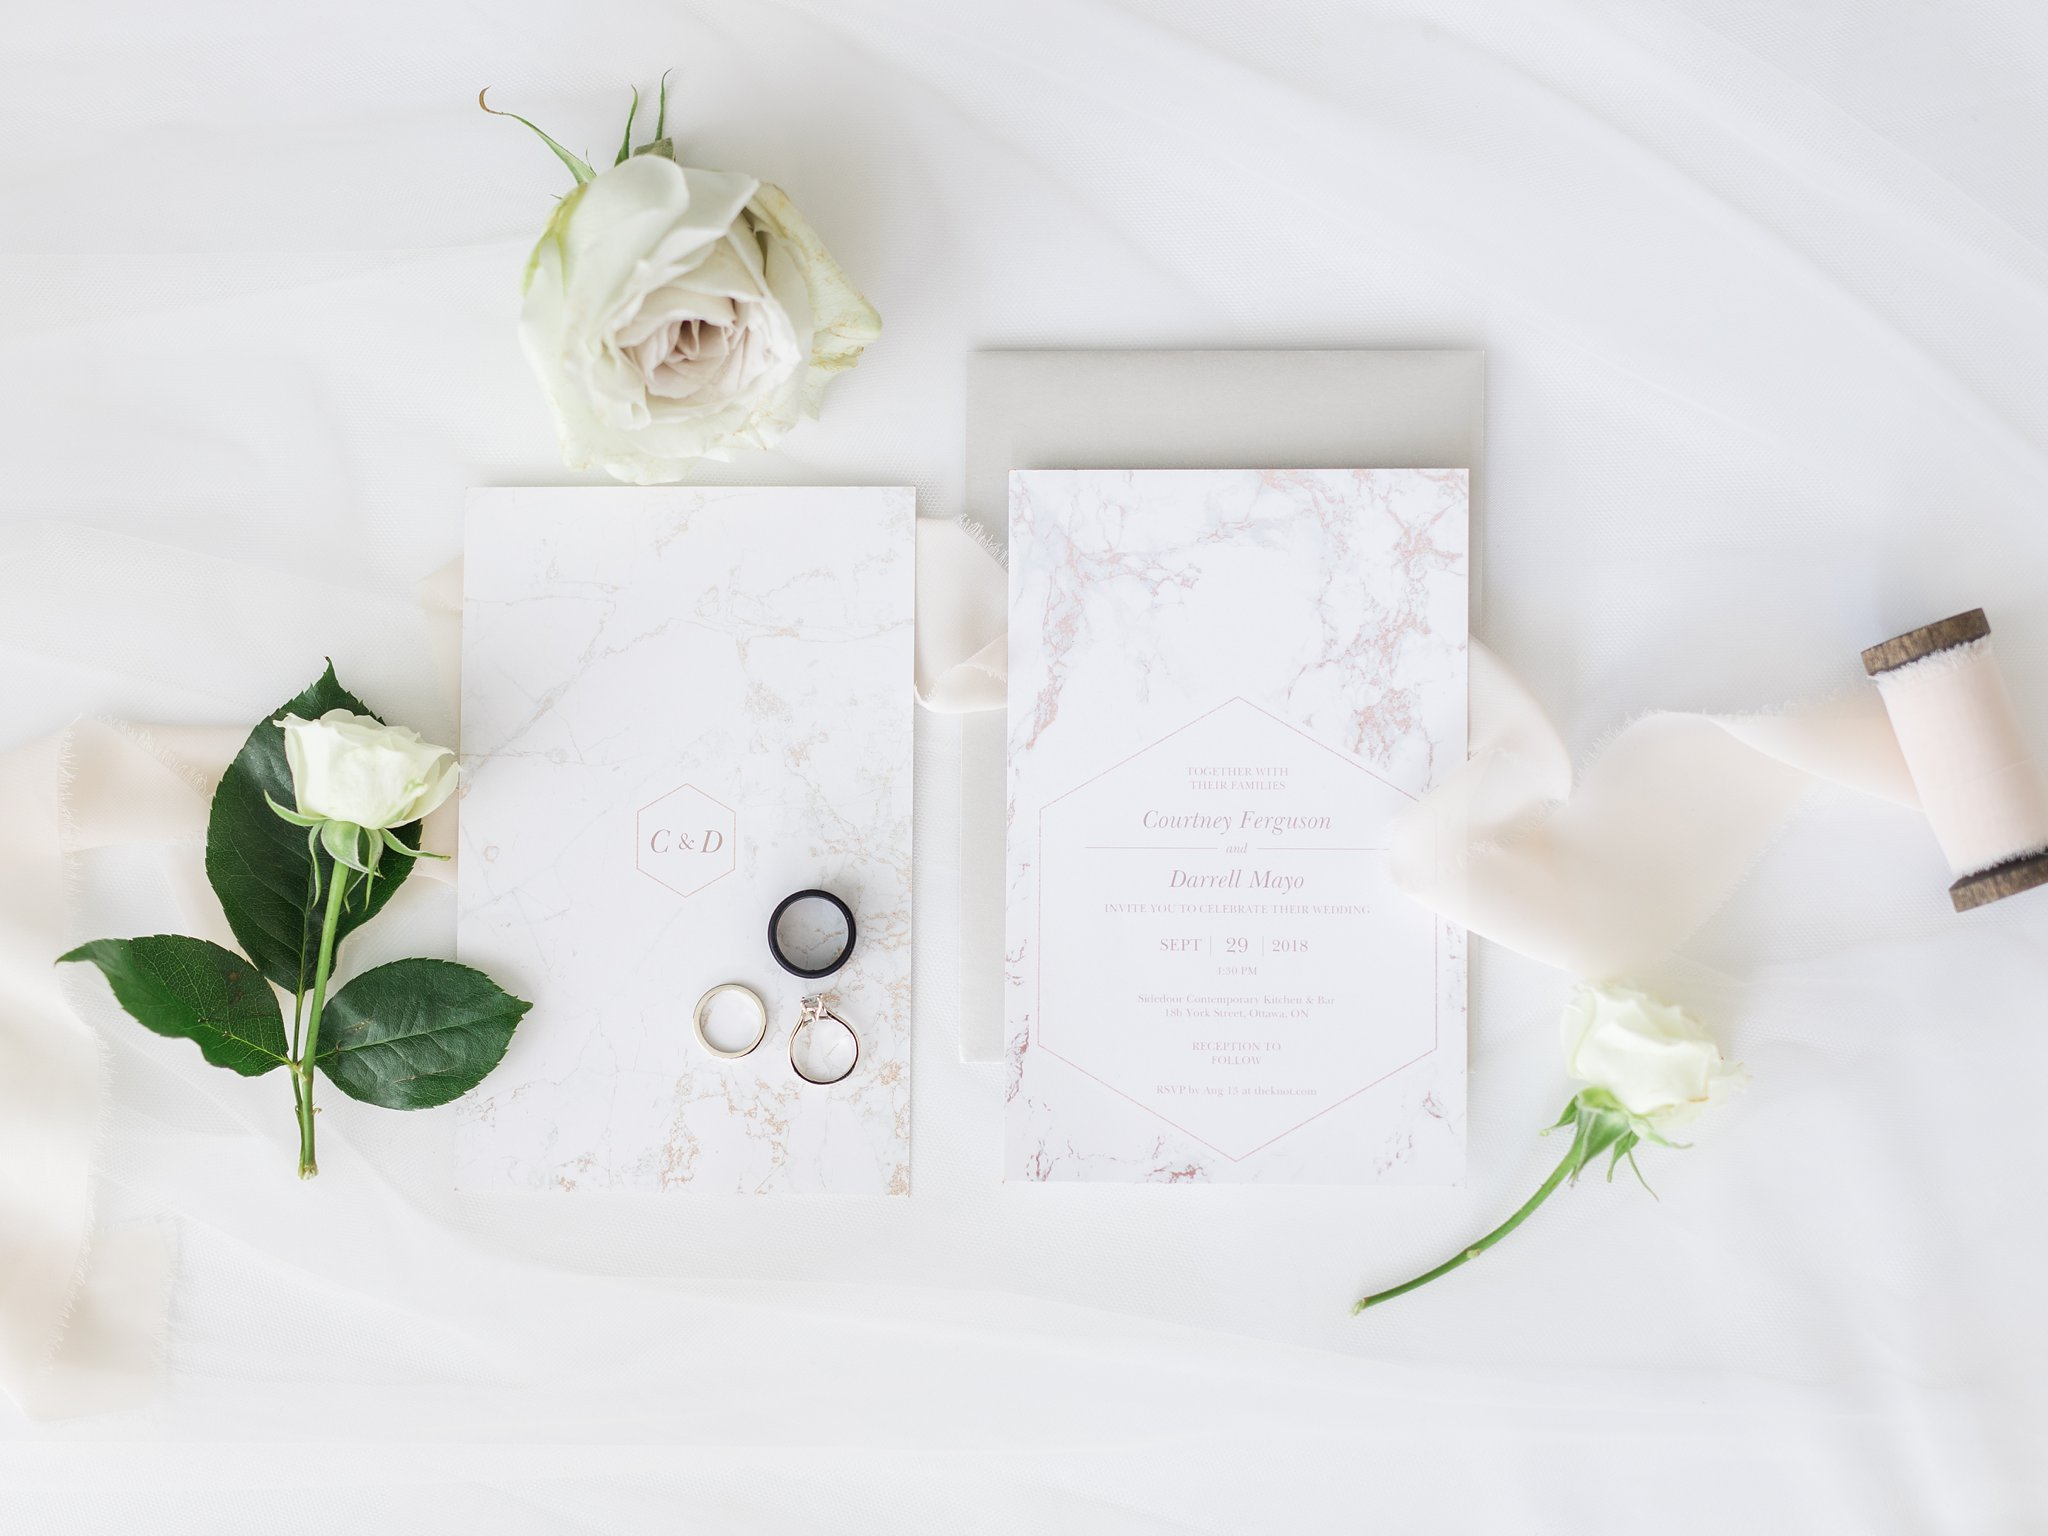 Vistaprint marble wedding invitations Ottawa restaurant wedding at Sidedoor Restaurant